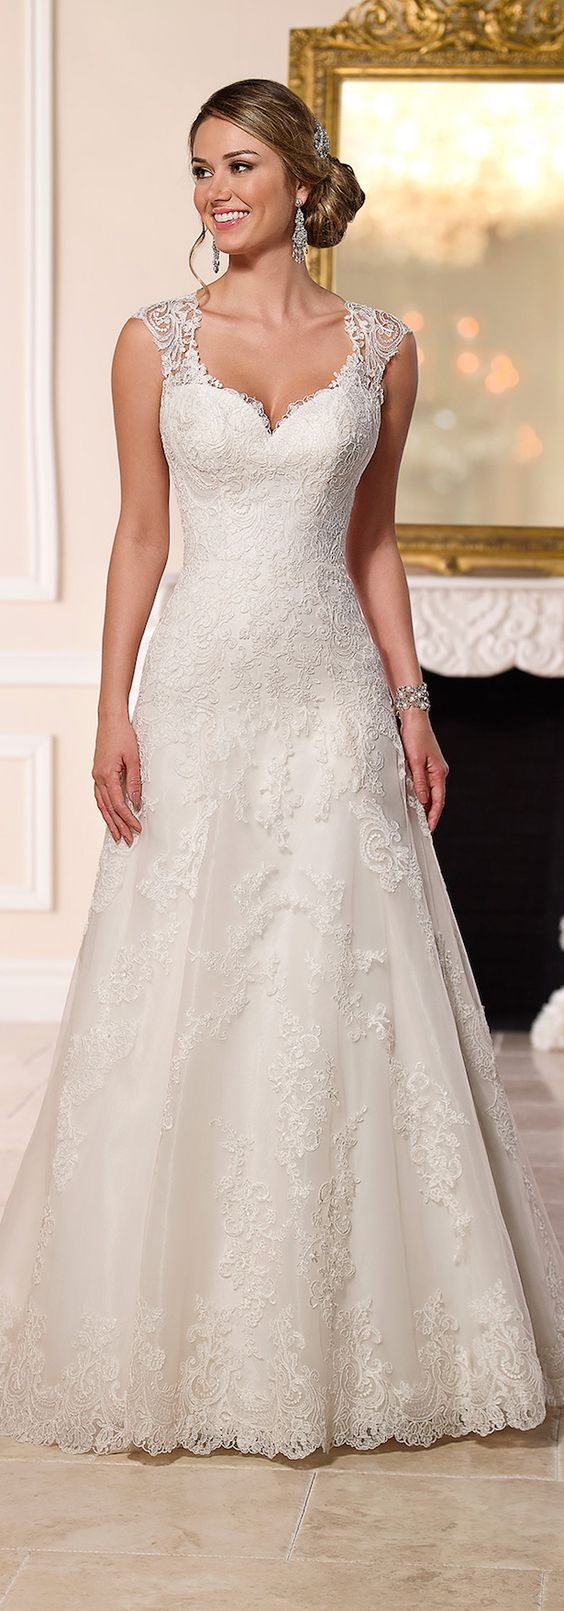 Stella York Spring 2016 Wedding Dress - Belle The Magazine: